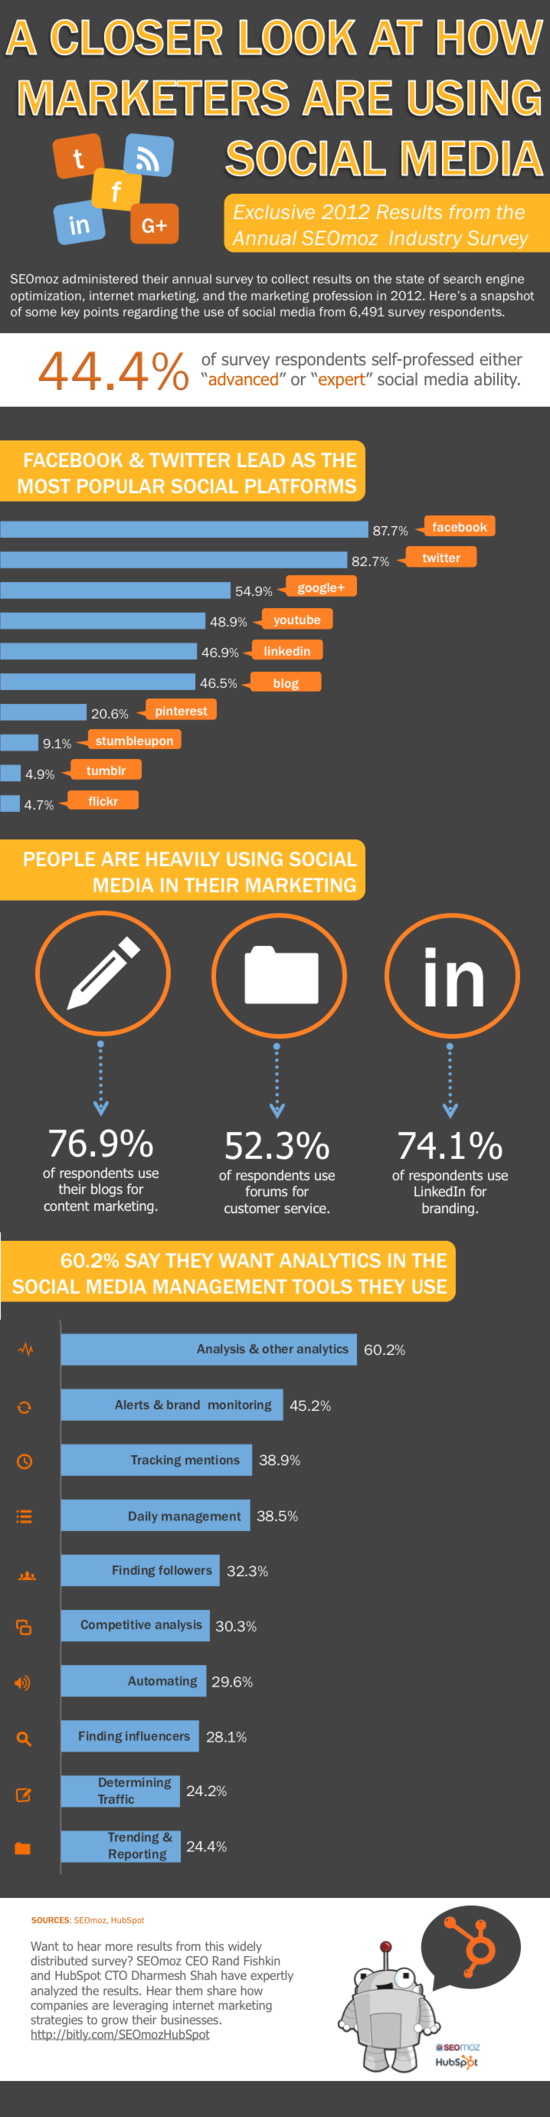 How Marketers Are Using Social Media - 2012 Annual SEOmoz Industry Exclusive Survey